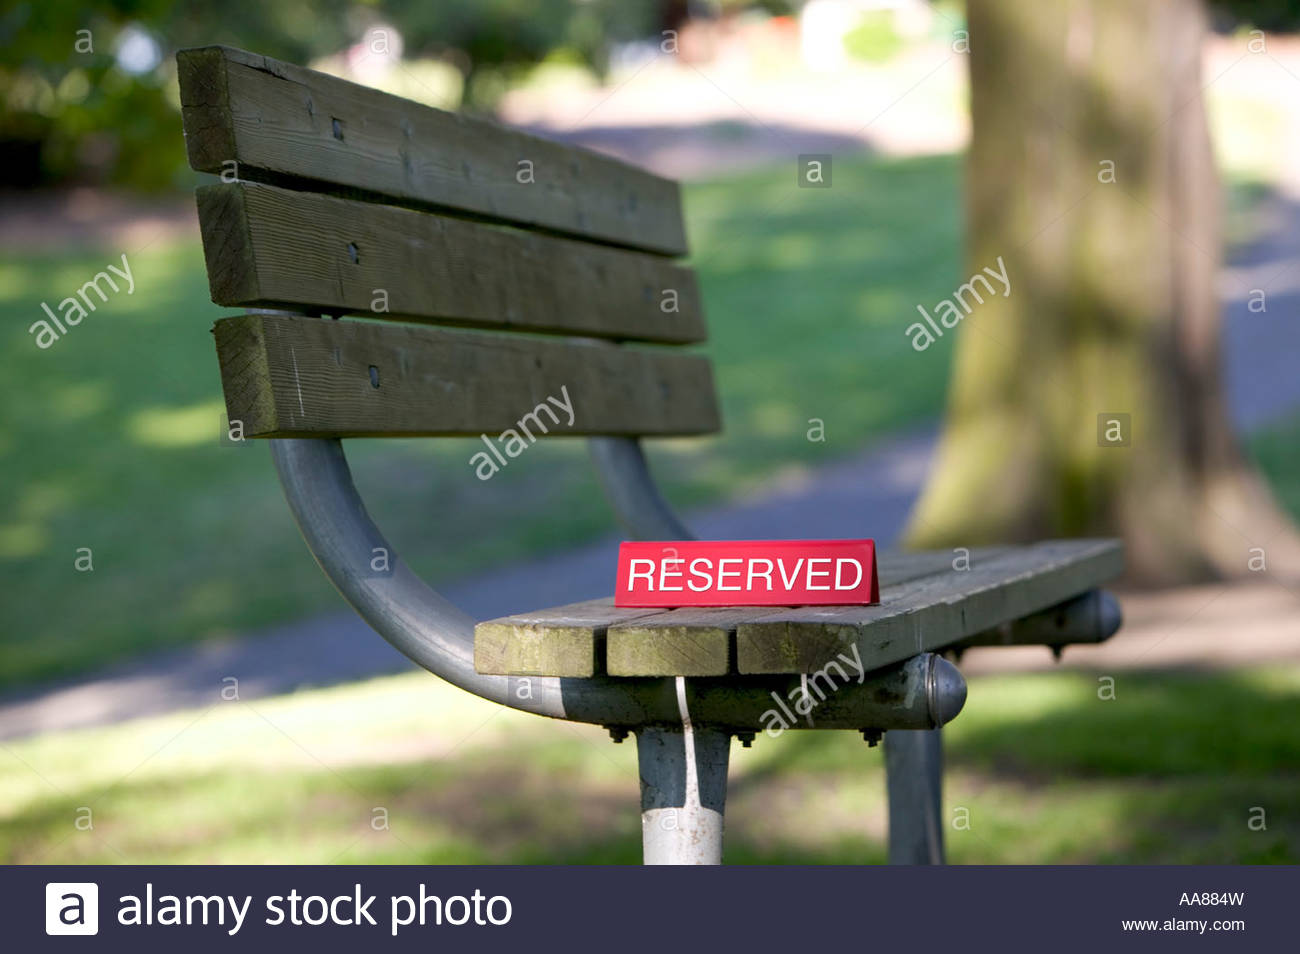 Park bench with reserved sign - Stock Image